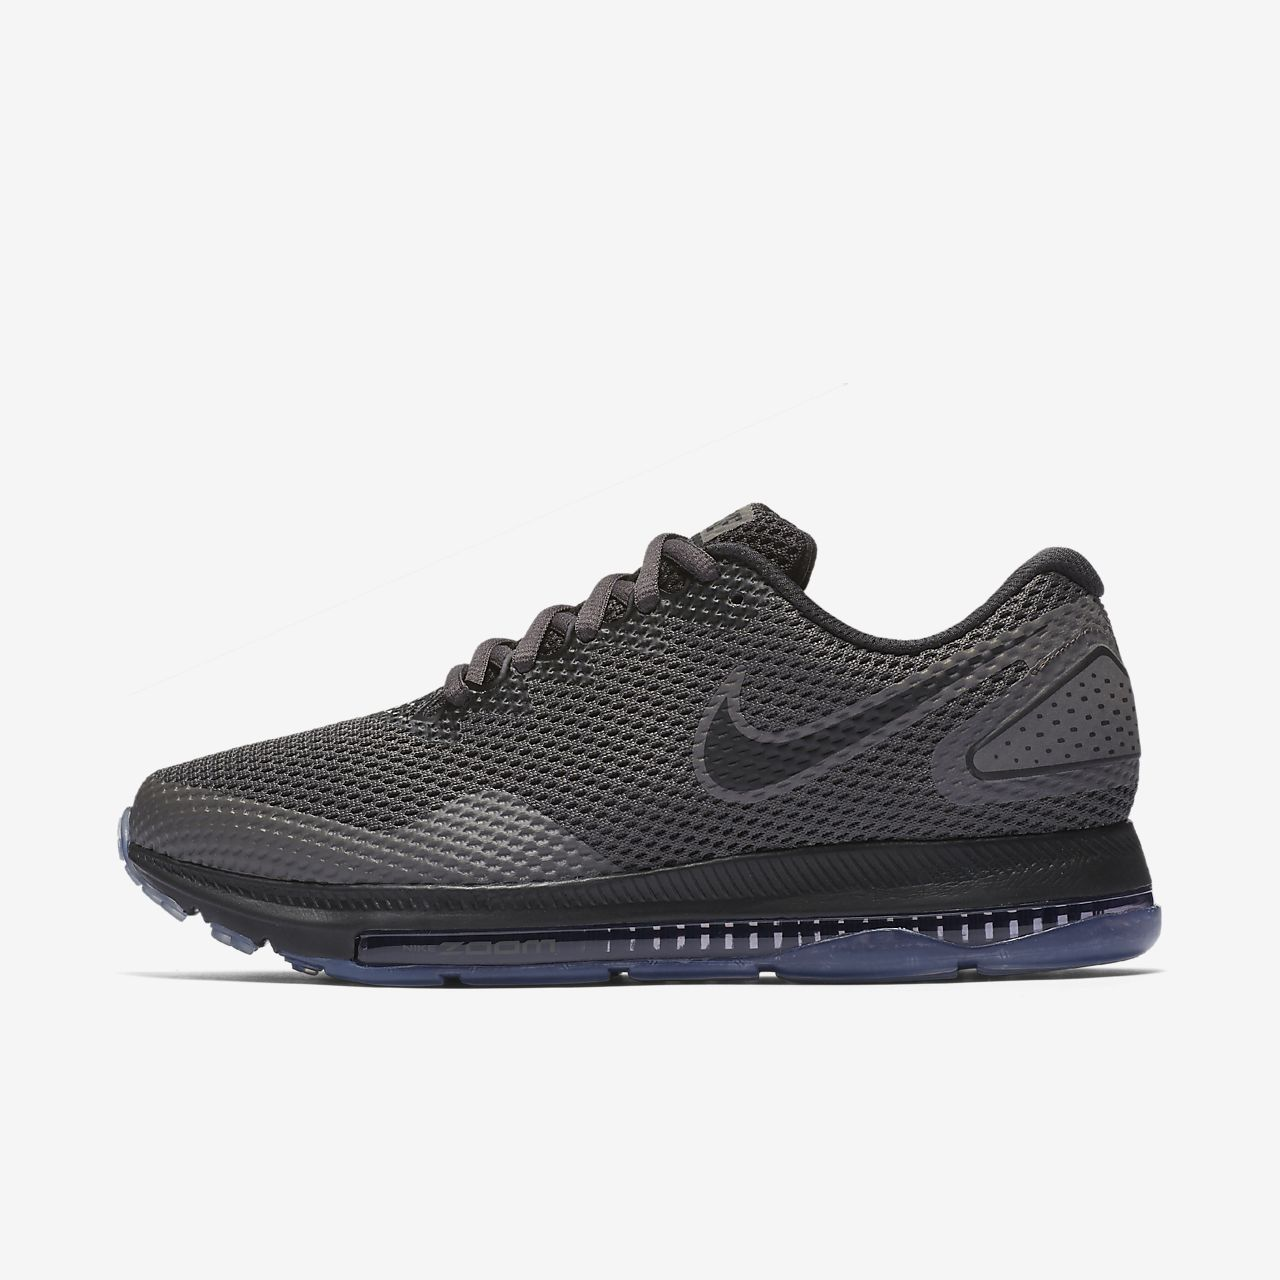 WMNS NIKE ZOOM ALL OUT LOW 2 BLACK RUNNING WOMEN'S SELECT YOUR SIZE